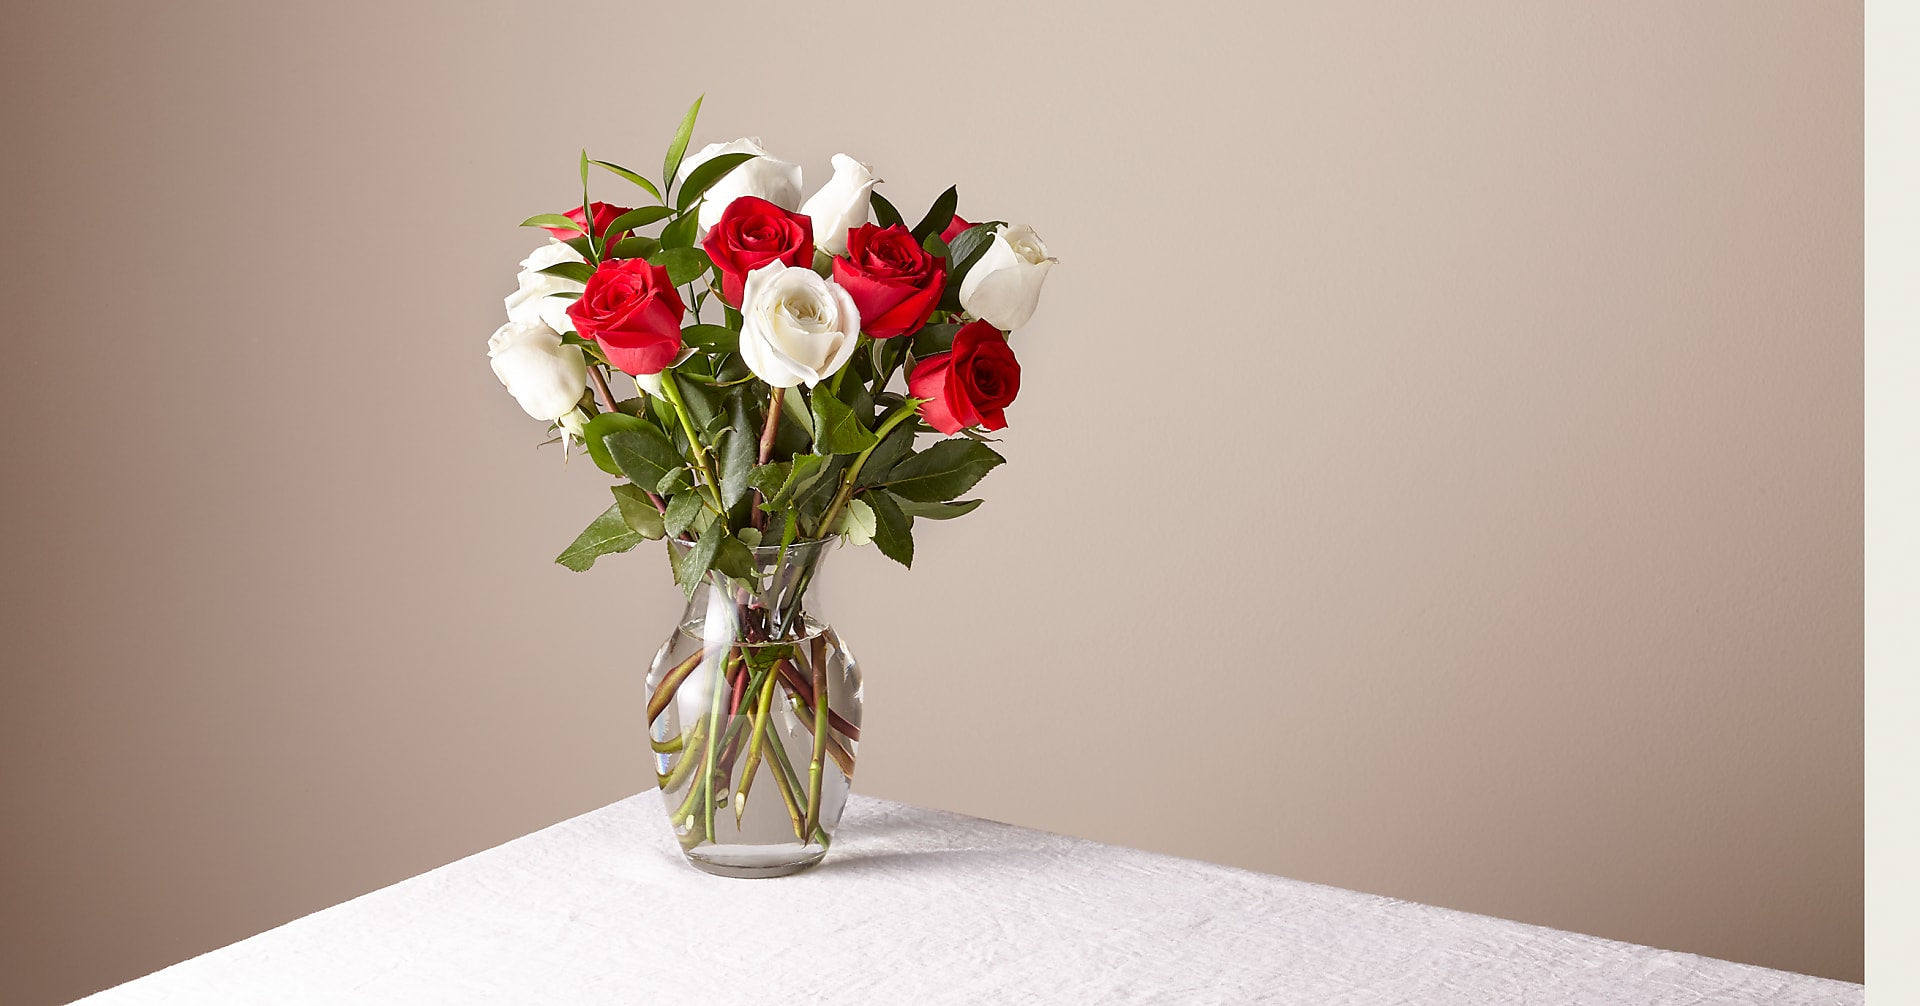 Original Nutcracker Rose Bouquet with Vase - Image 1 Of 3